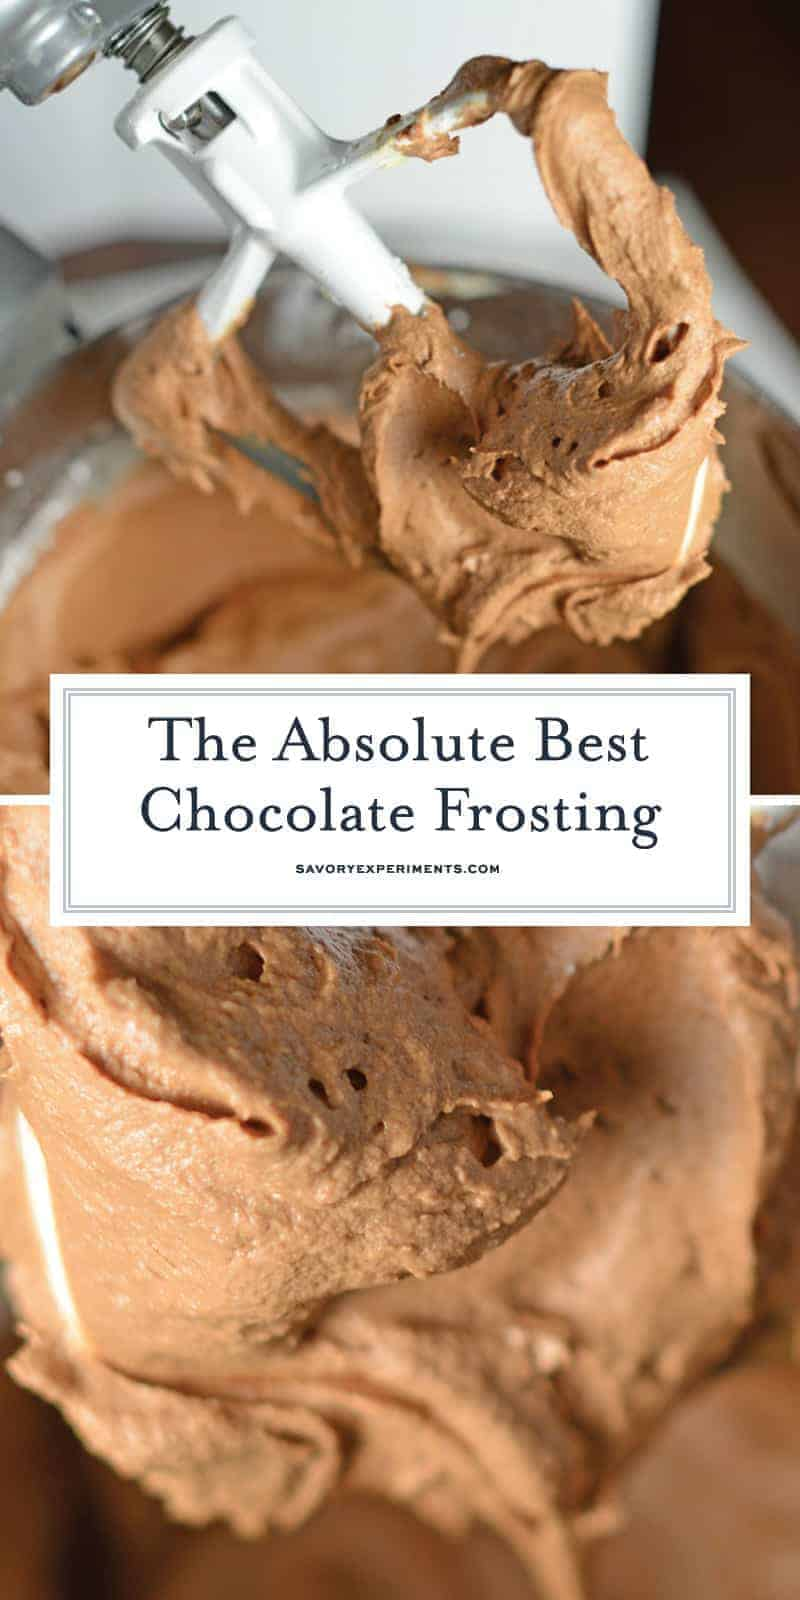 This Chocolate Buttercream is perfection! It is light and fluffy and has the perfect chocolate touch! I use it on anything that calls for frosting. #chocolatefrosting #chocolatebuttercream www.savoryexperiments.com